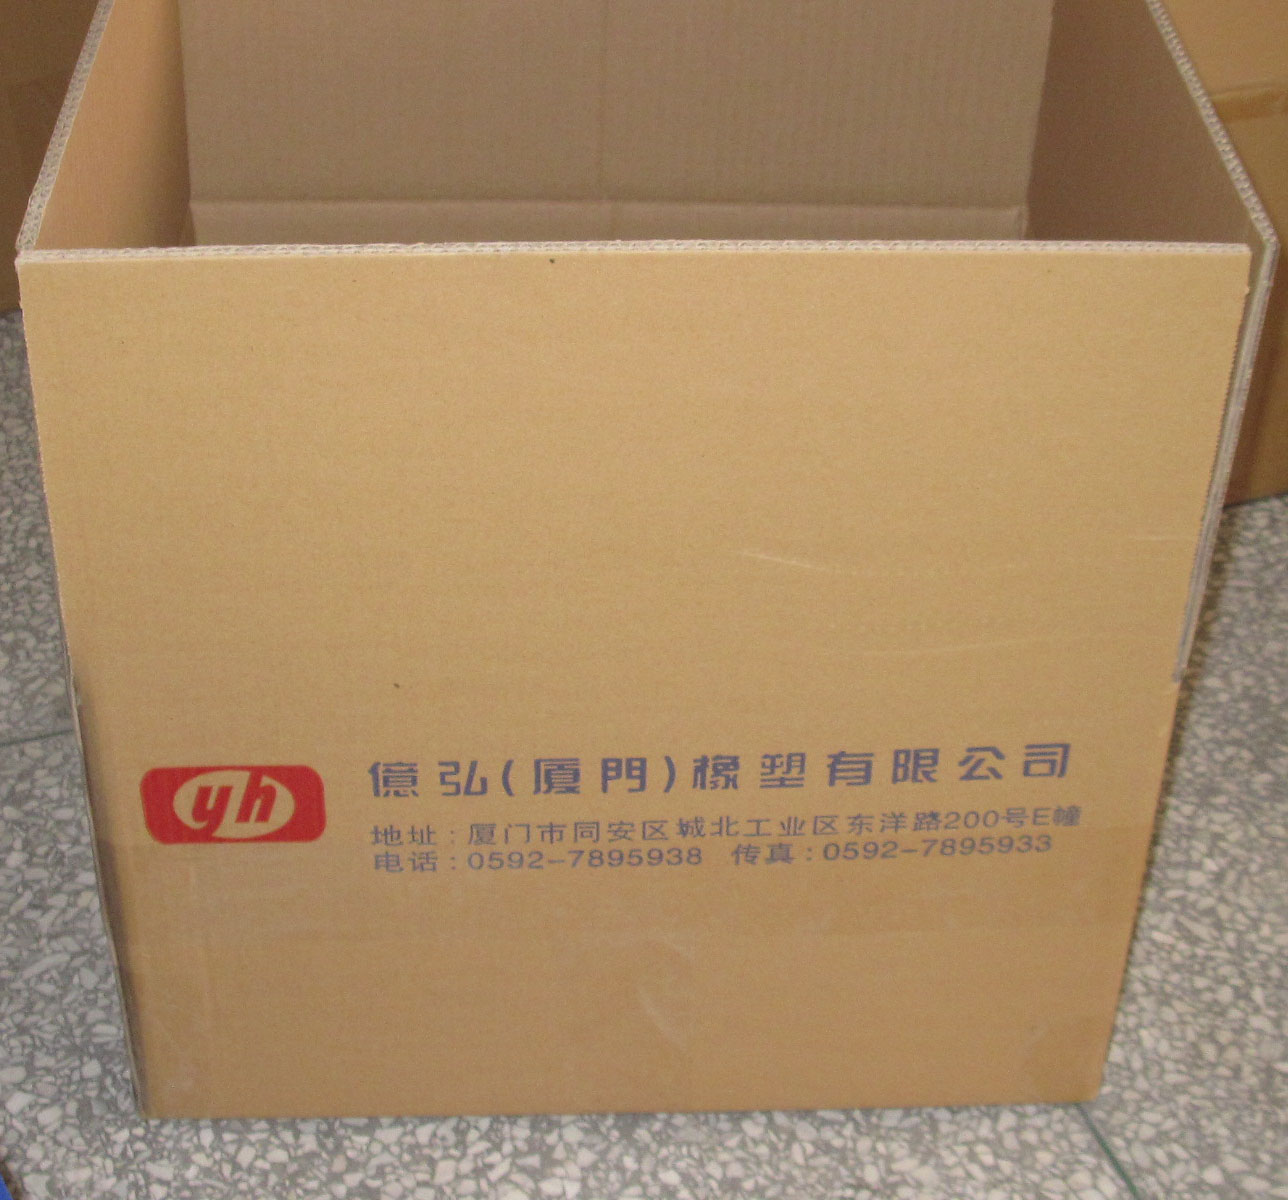 carton outside packing